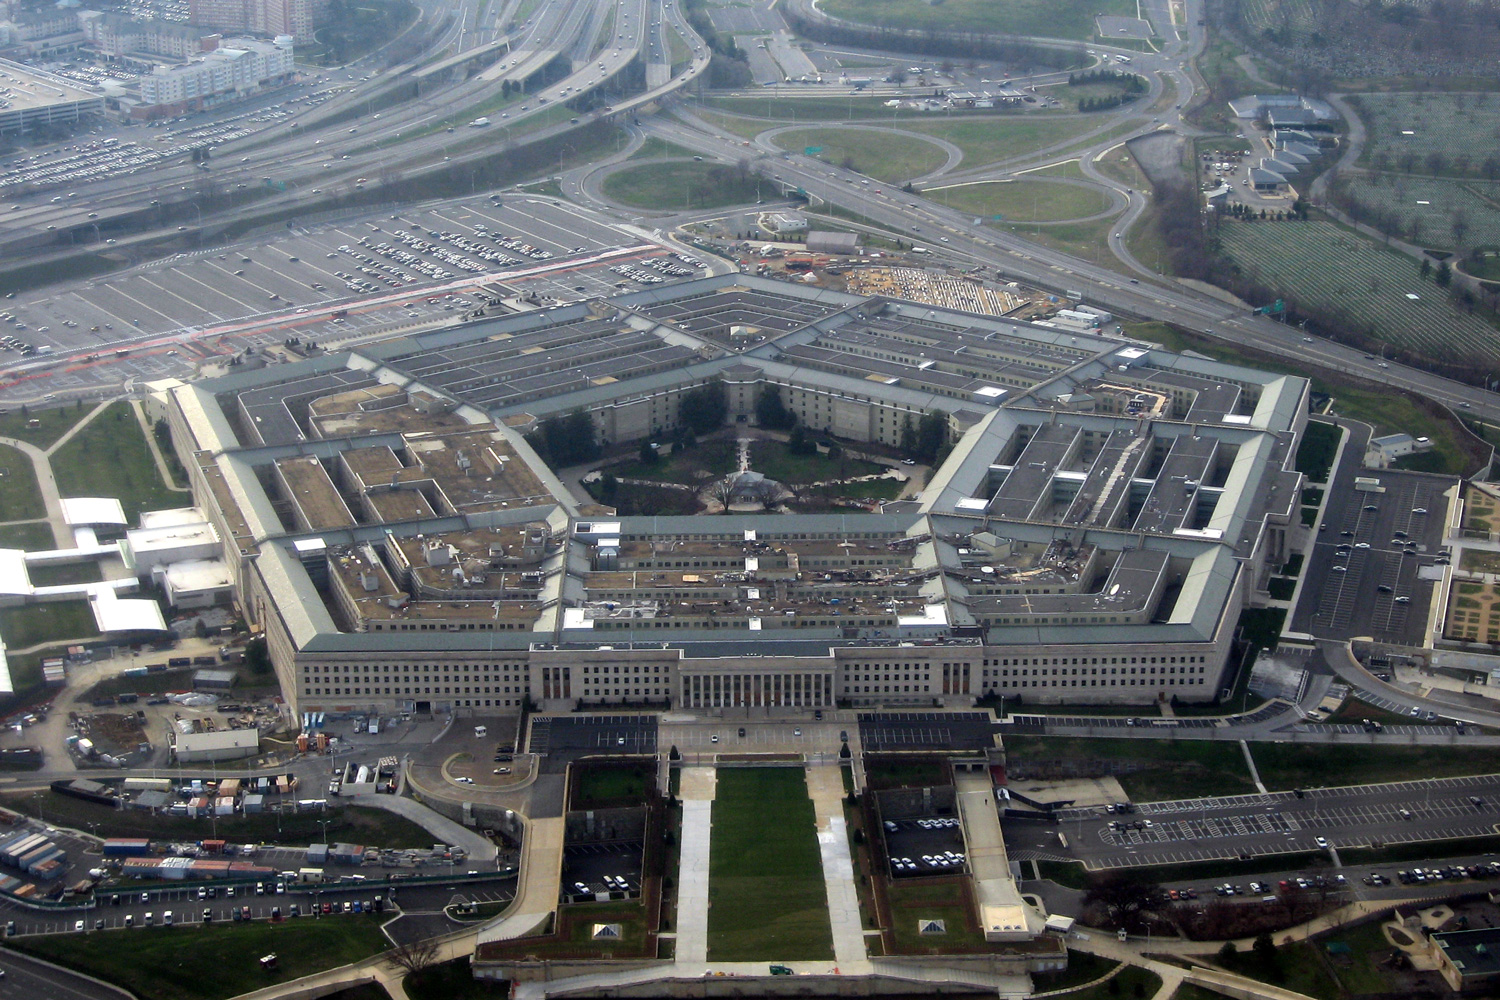 Pentagon CIO wants staff to upgrade to Windows 10 on their home devices